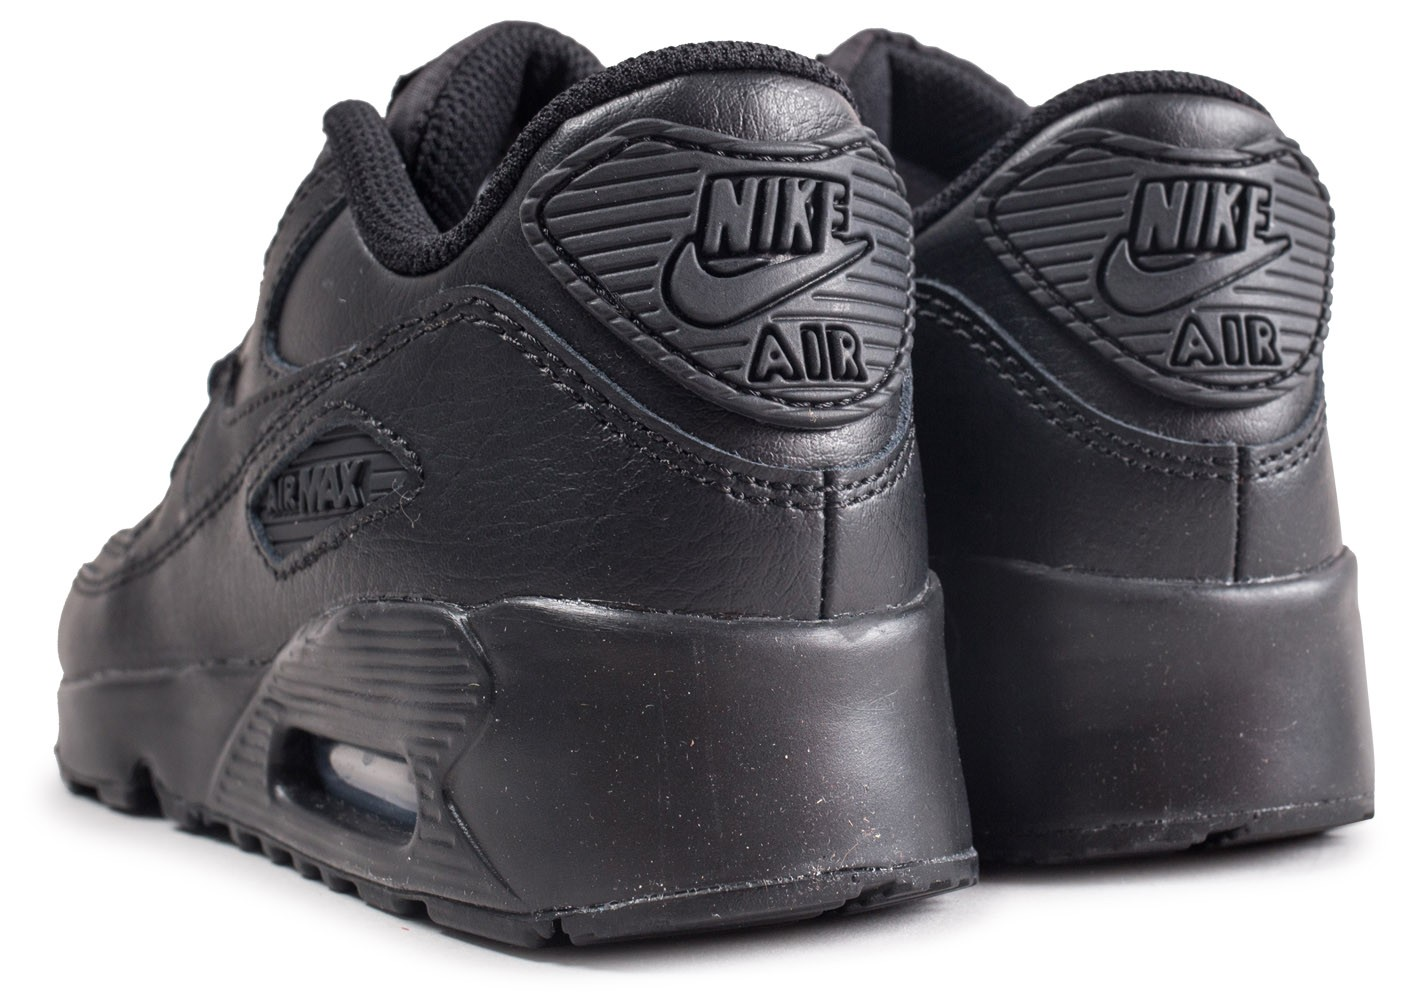 info for 40fbe e8ffb ... Chaussures Nike Nike Air Max 90 Leather Pre-School noire enfant vue  dessous ...